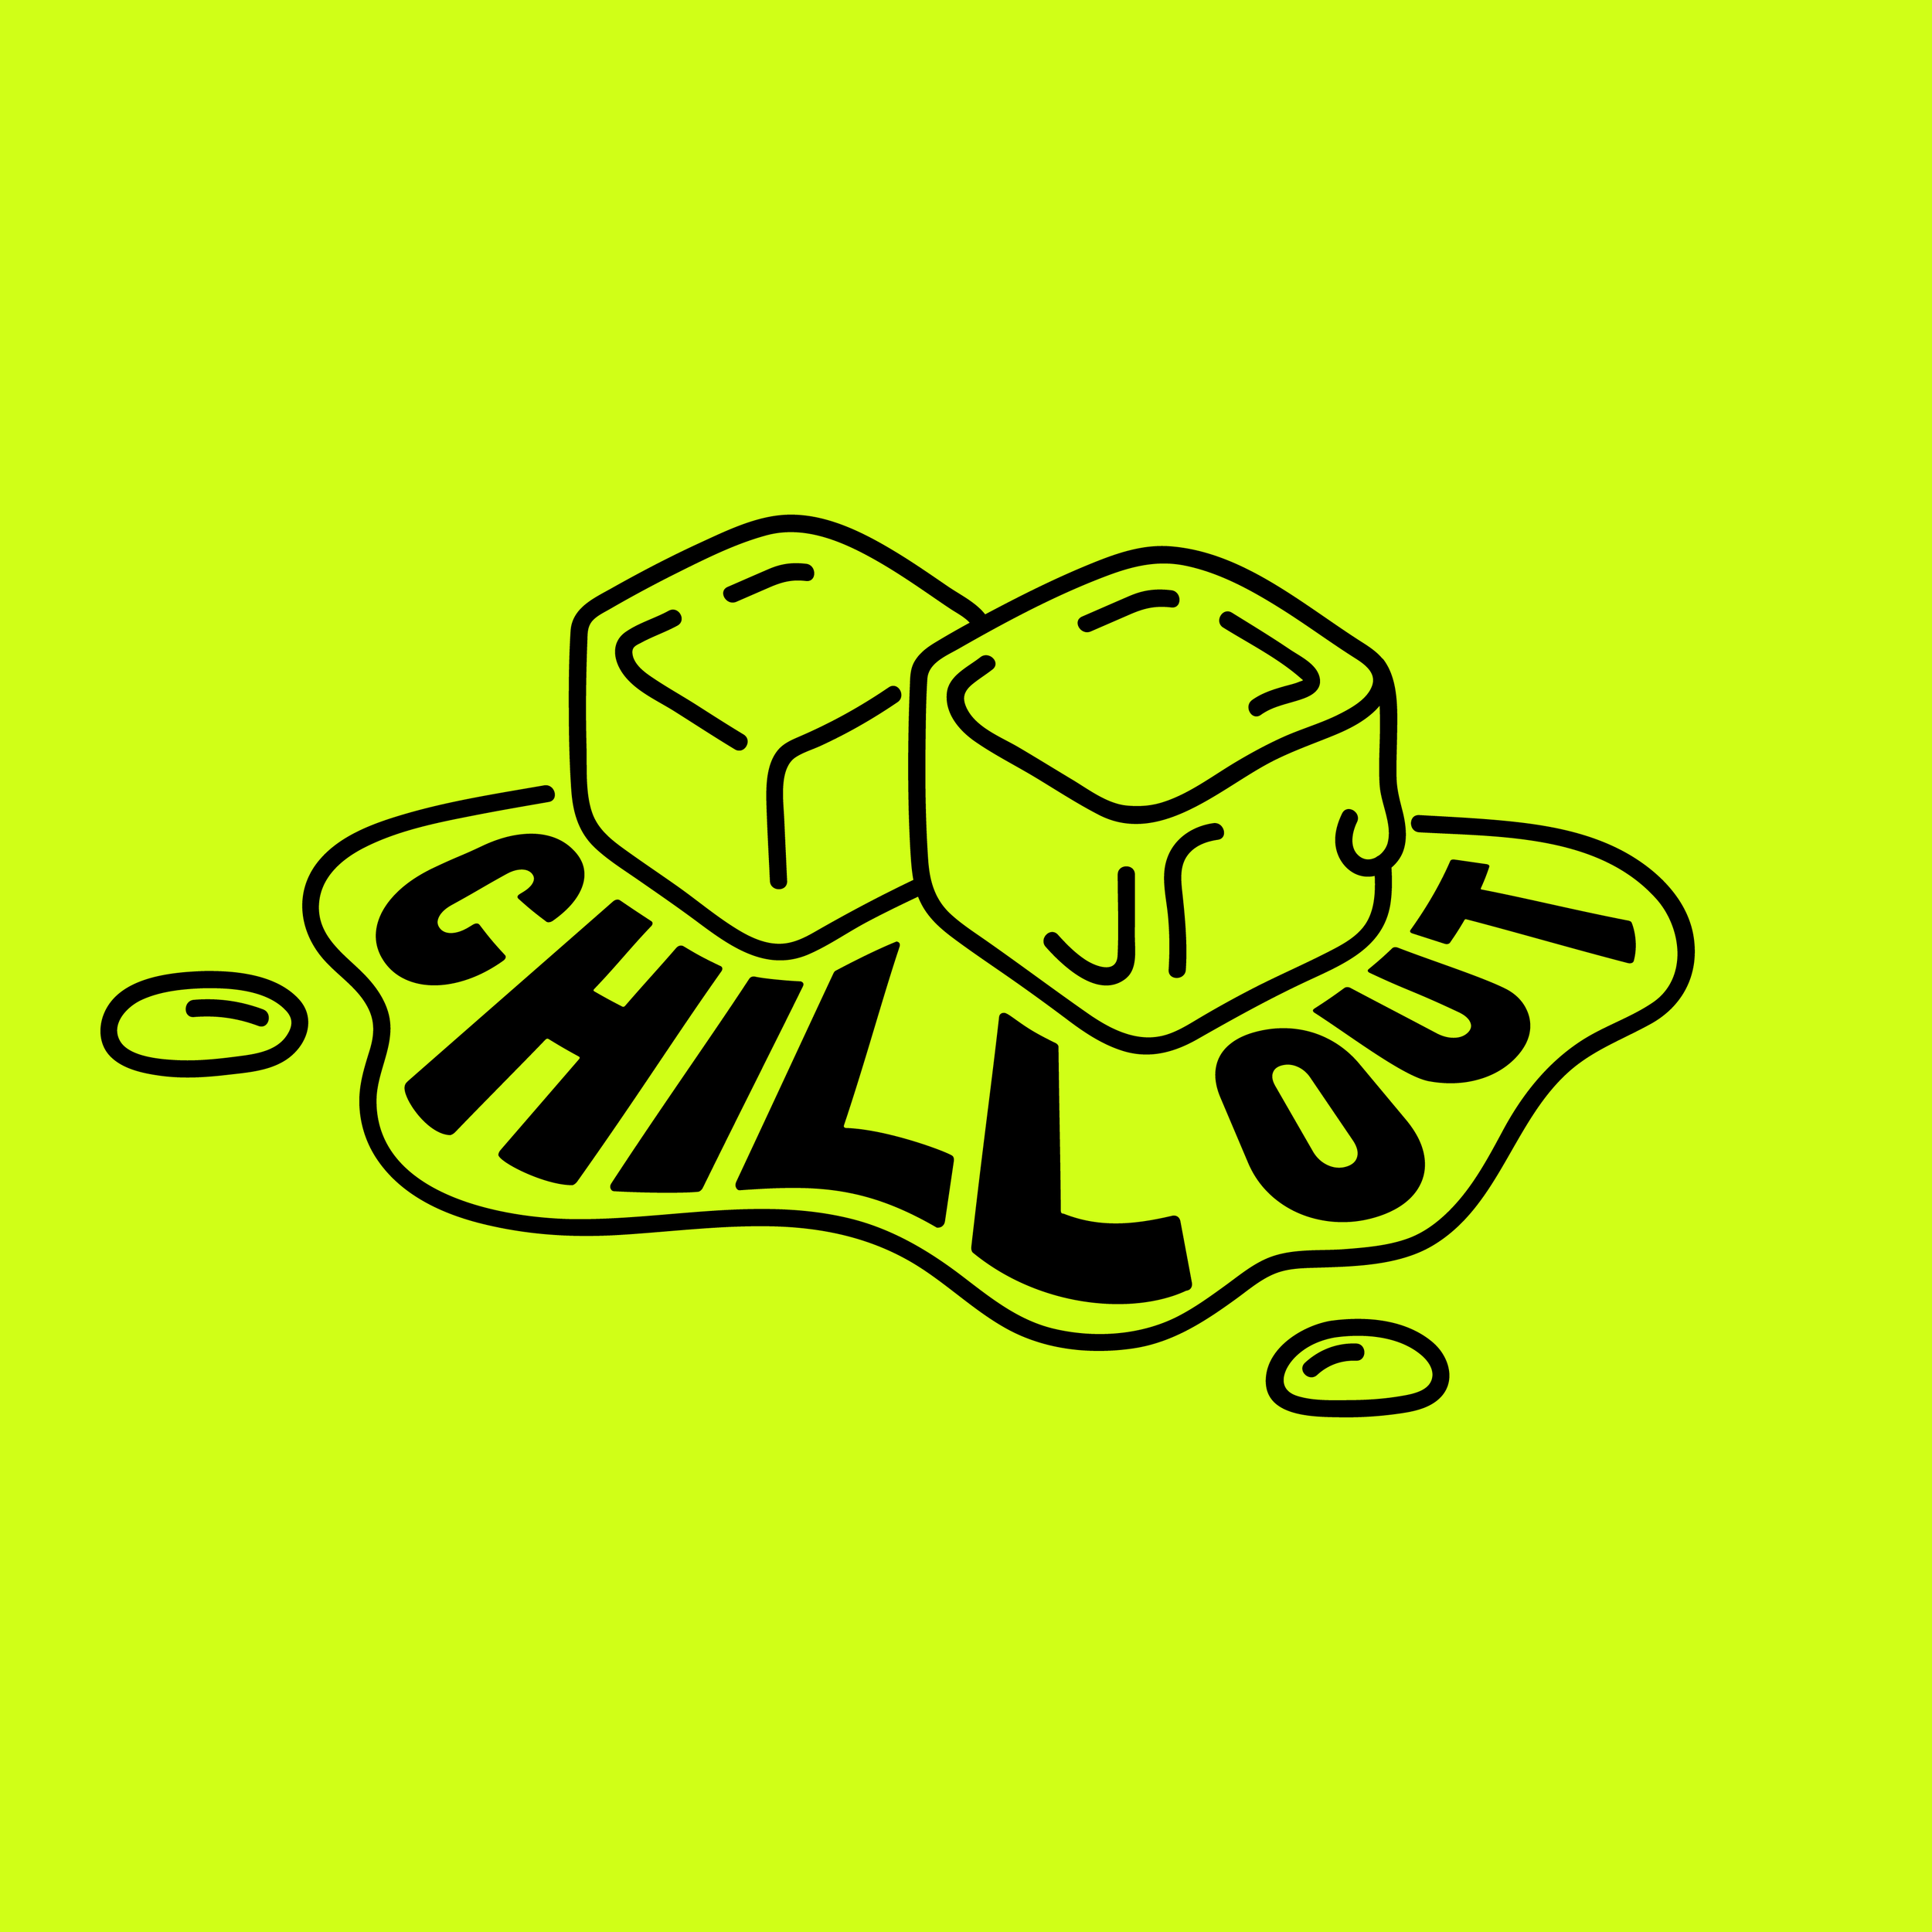 TWA_SummerSwag_IceCube_960px_Yellow-01.png